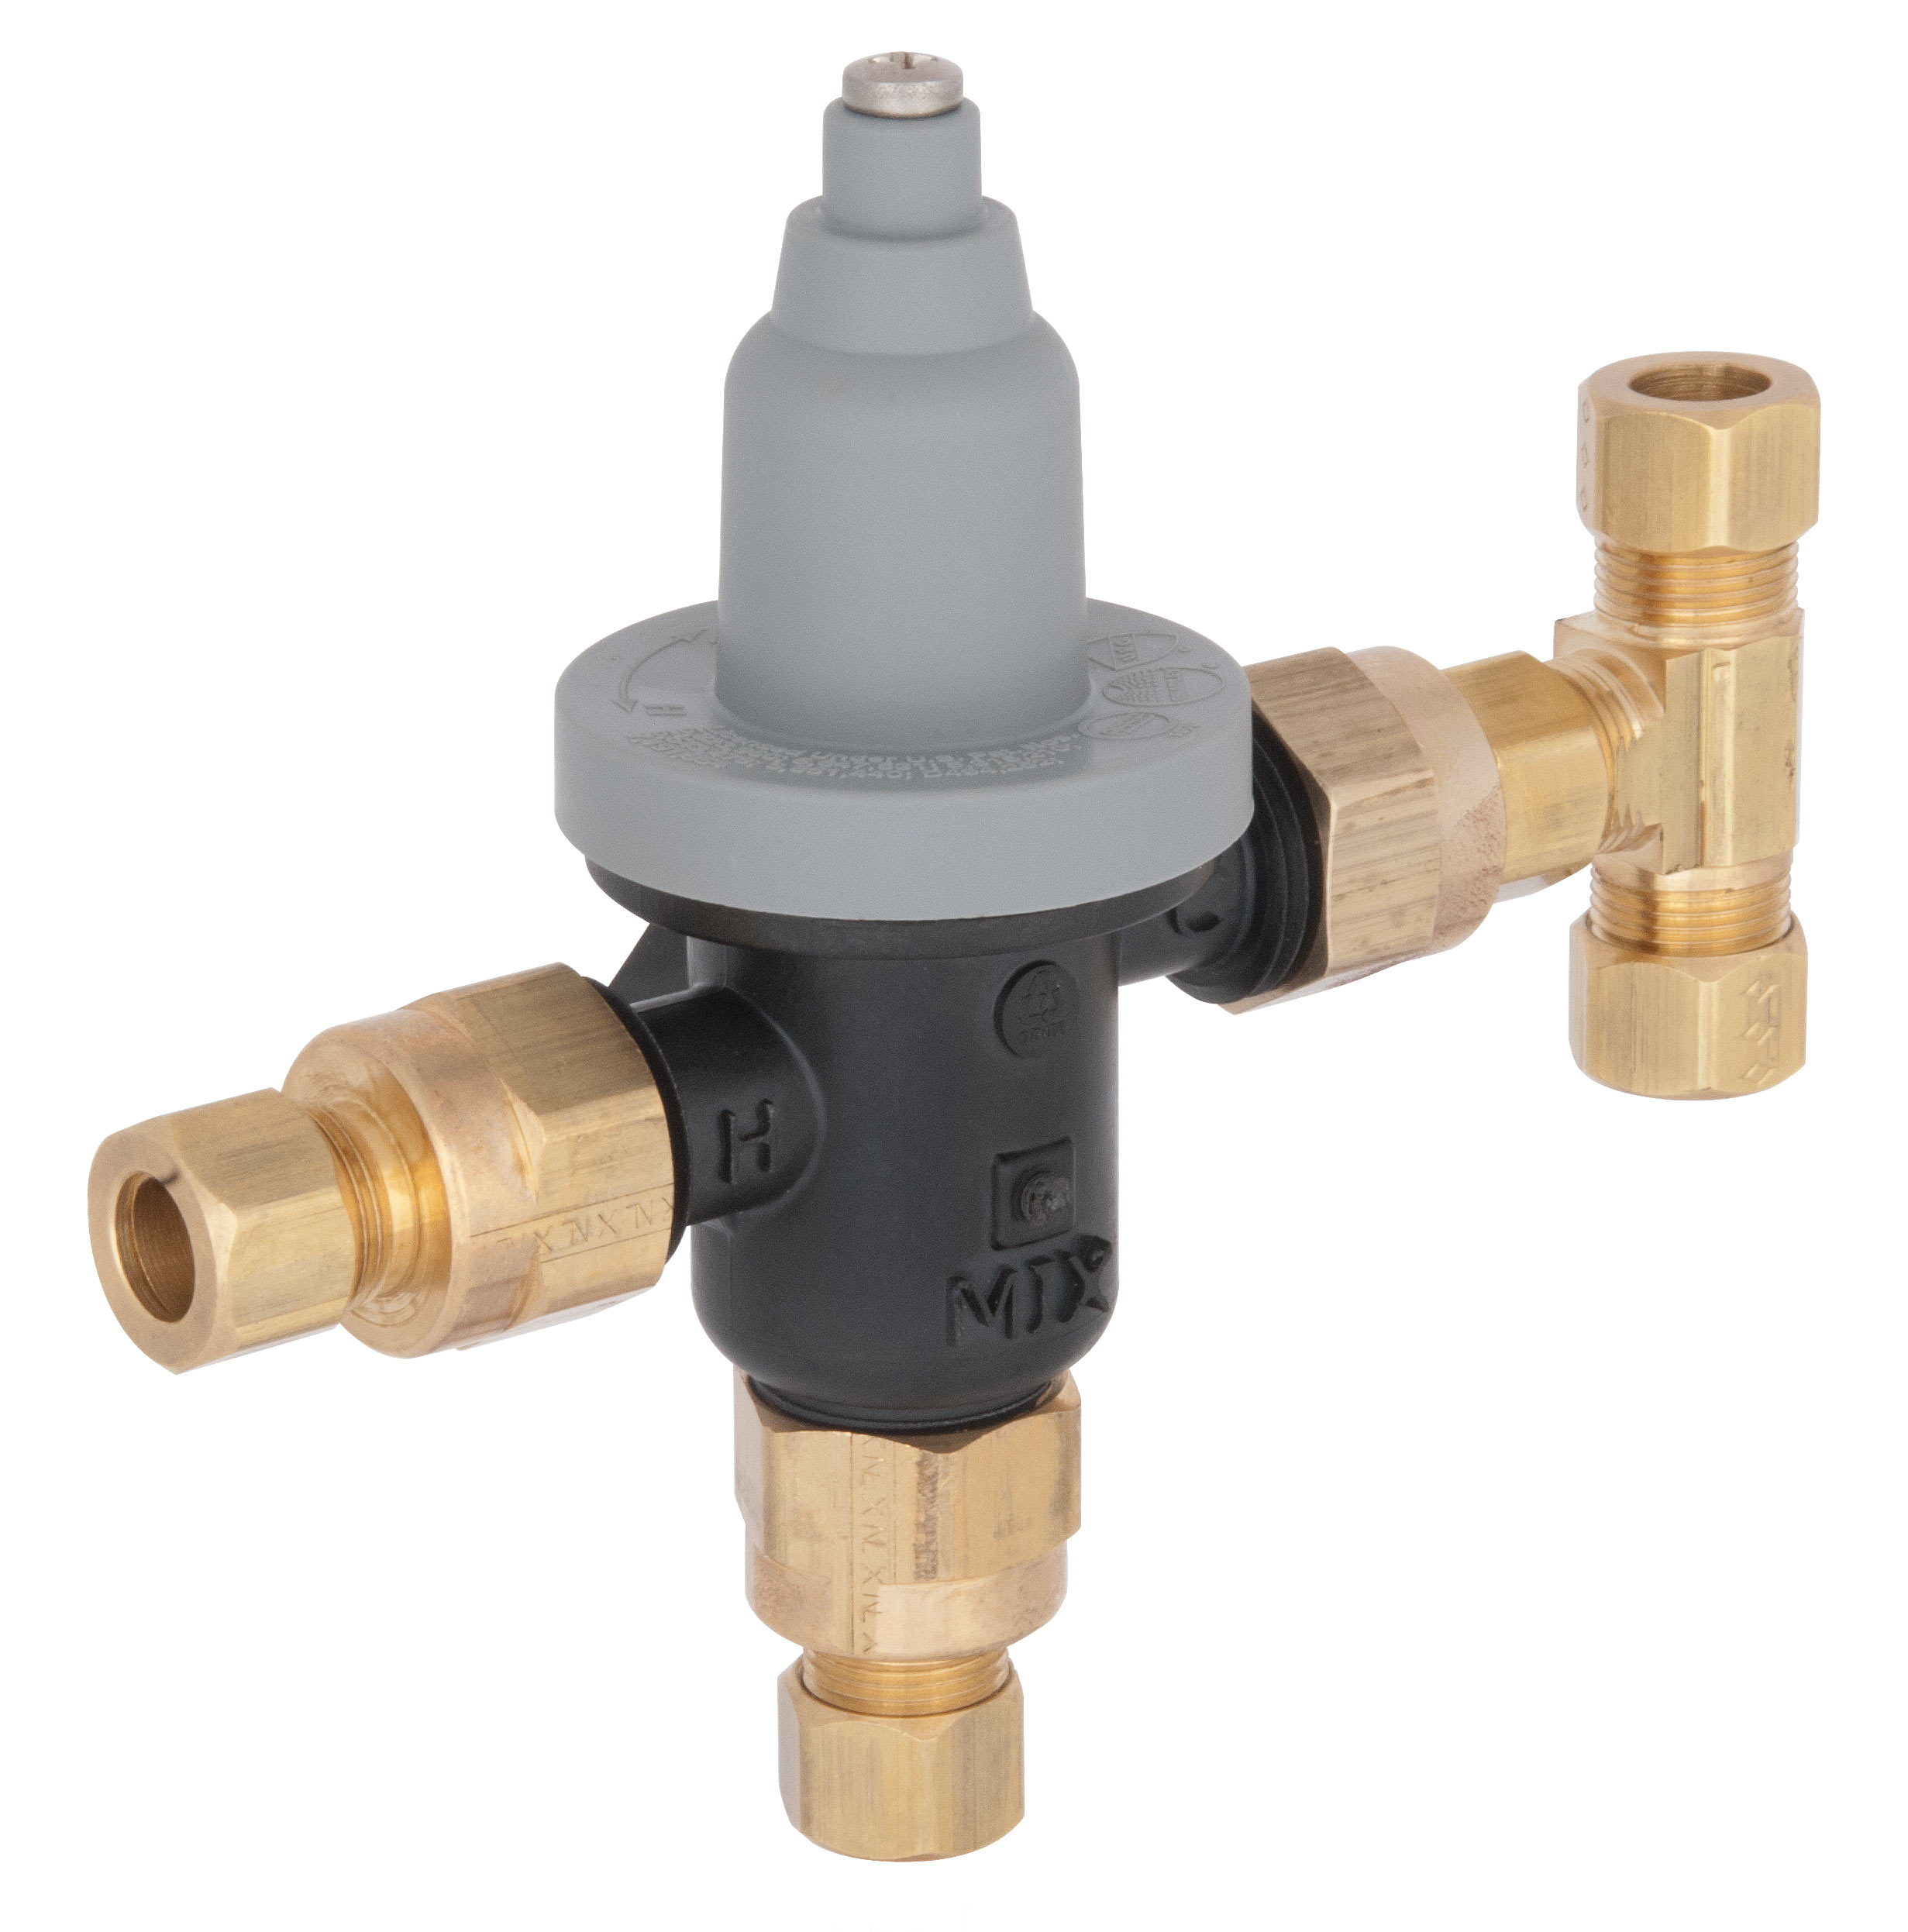 "High Quality Professional Design Thermostatic Mixer Valve: Point-of-Use Valve With 3/8"" Bypass And Compression"